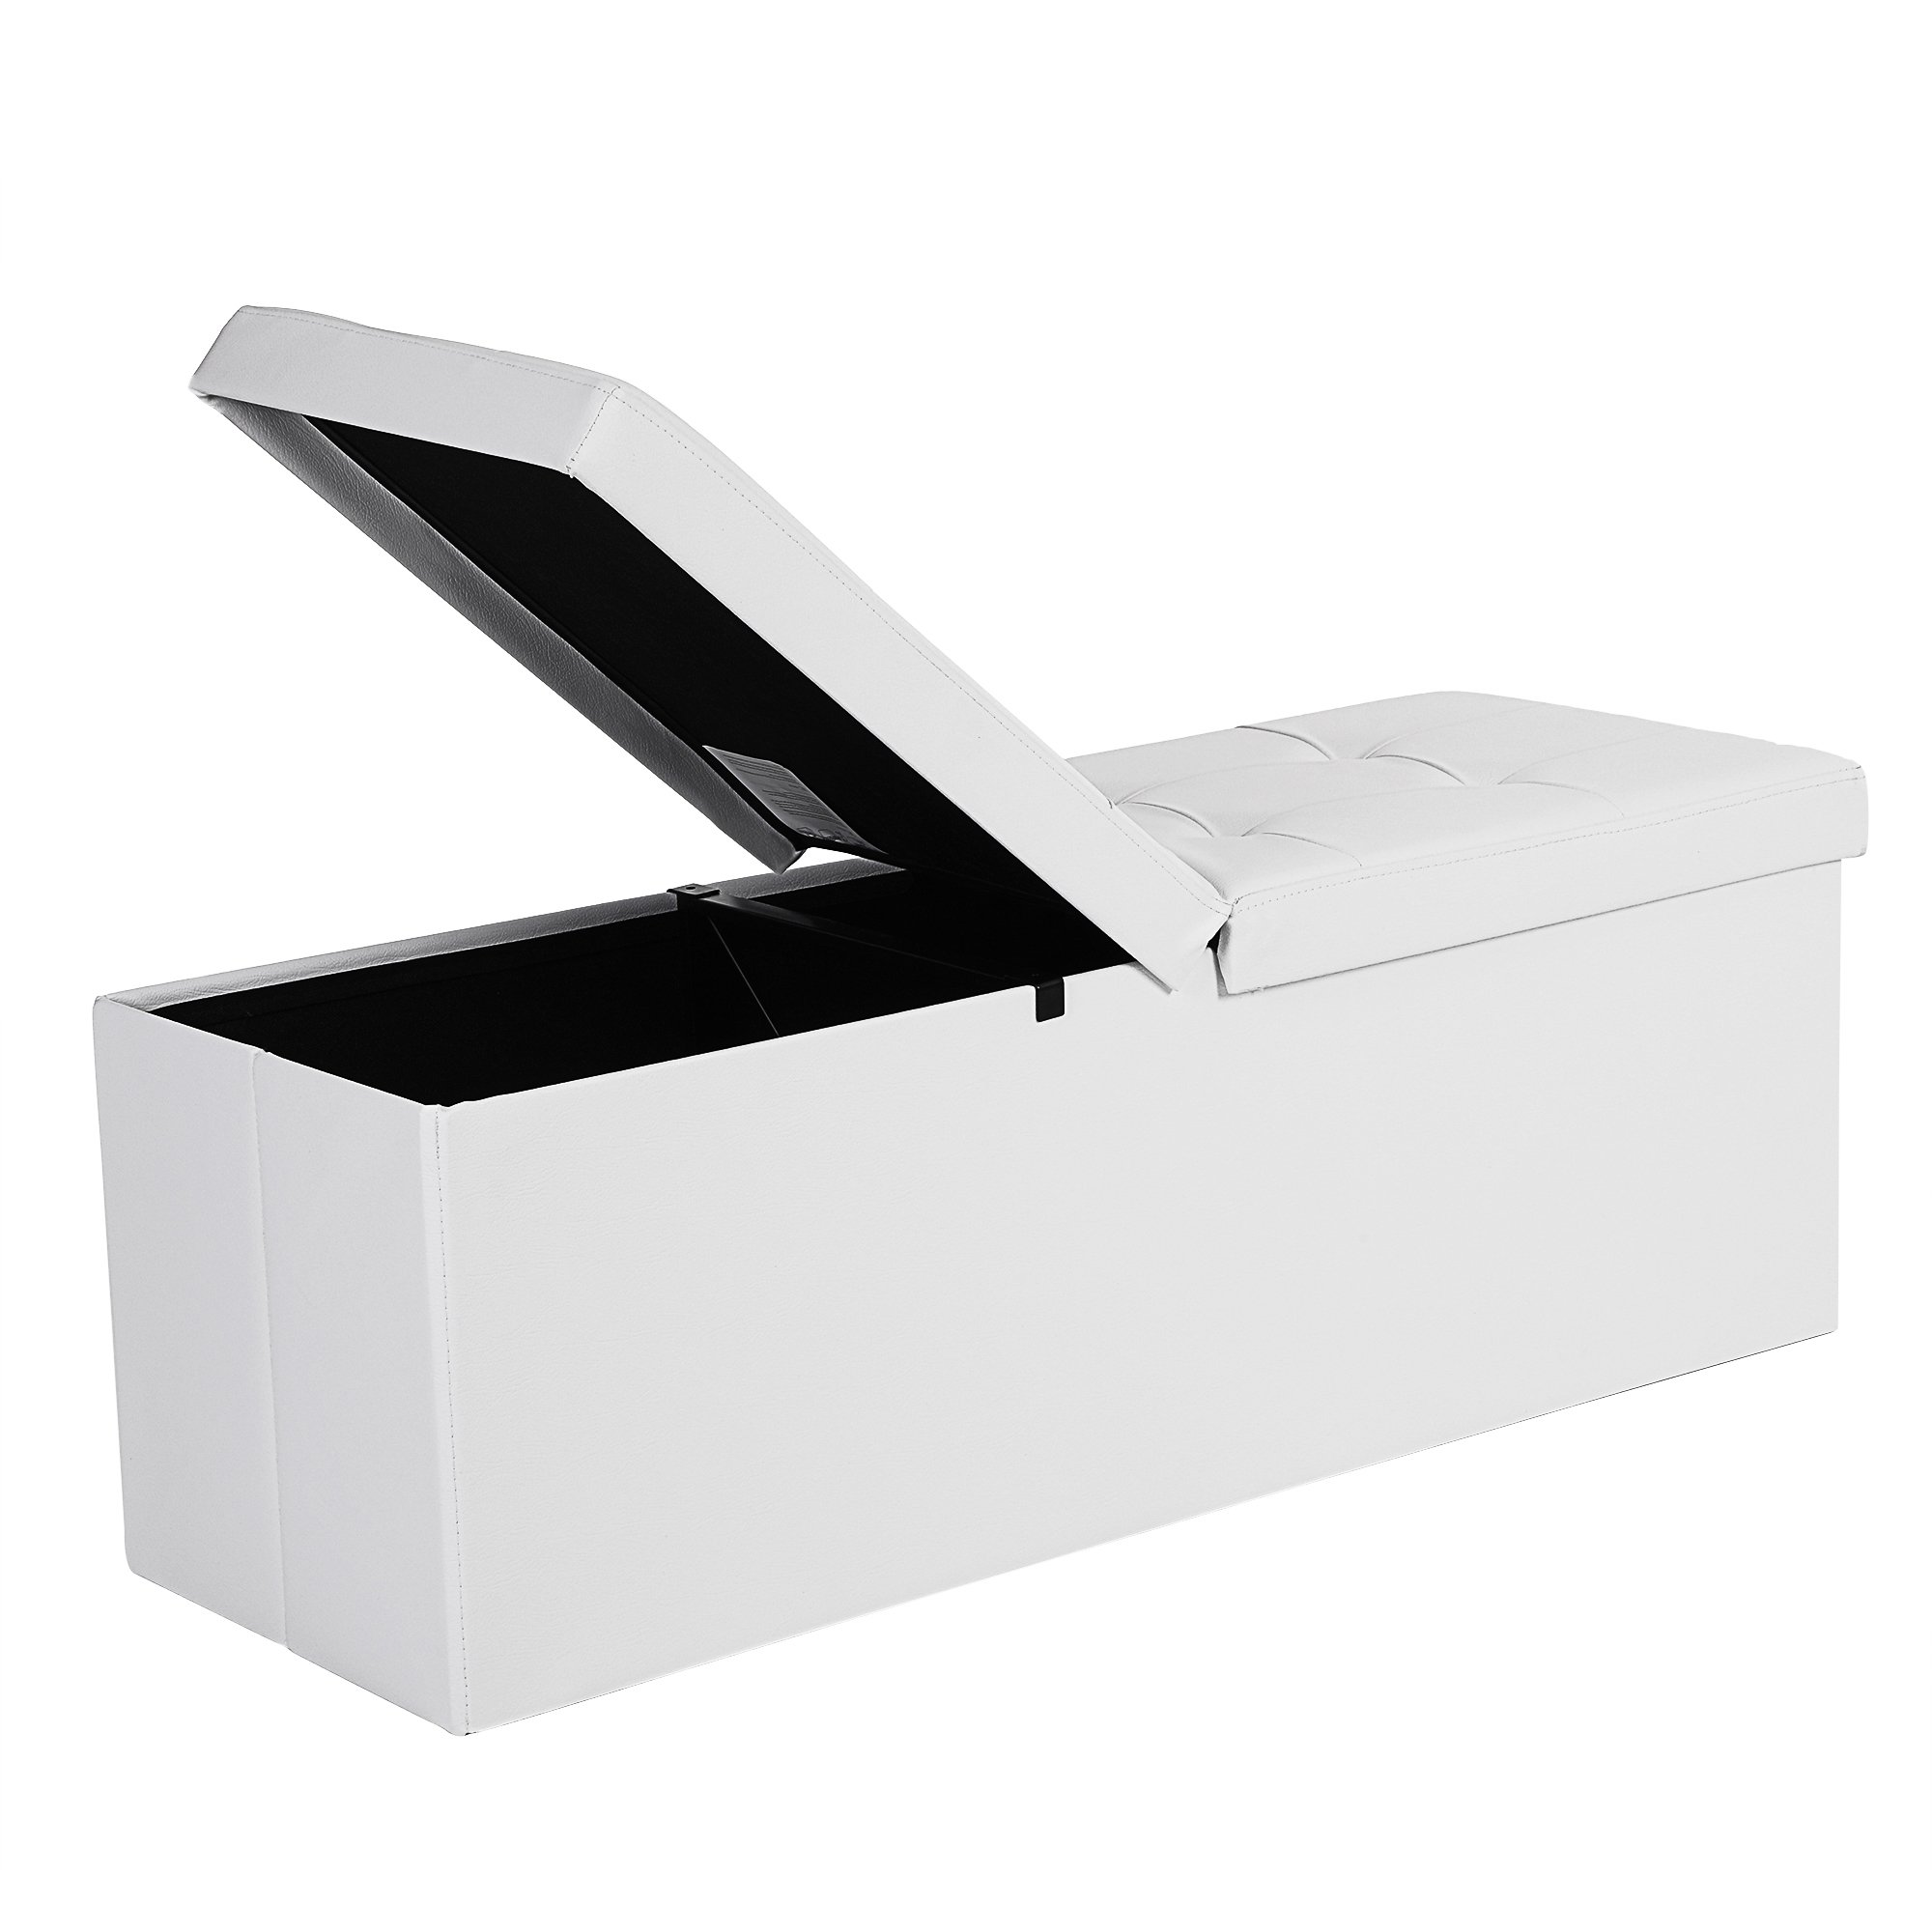 SONGMICS 43 Inches Folding Storage Ottoman Bench with Flipping Lid, Storage Chest Footrest Padded Seat with Iron Frame Support, White ULSF75WT by SONGMICS